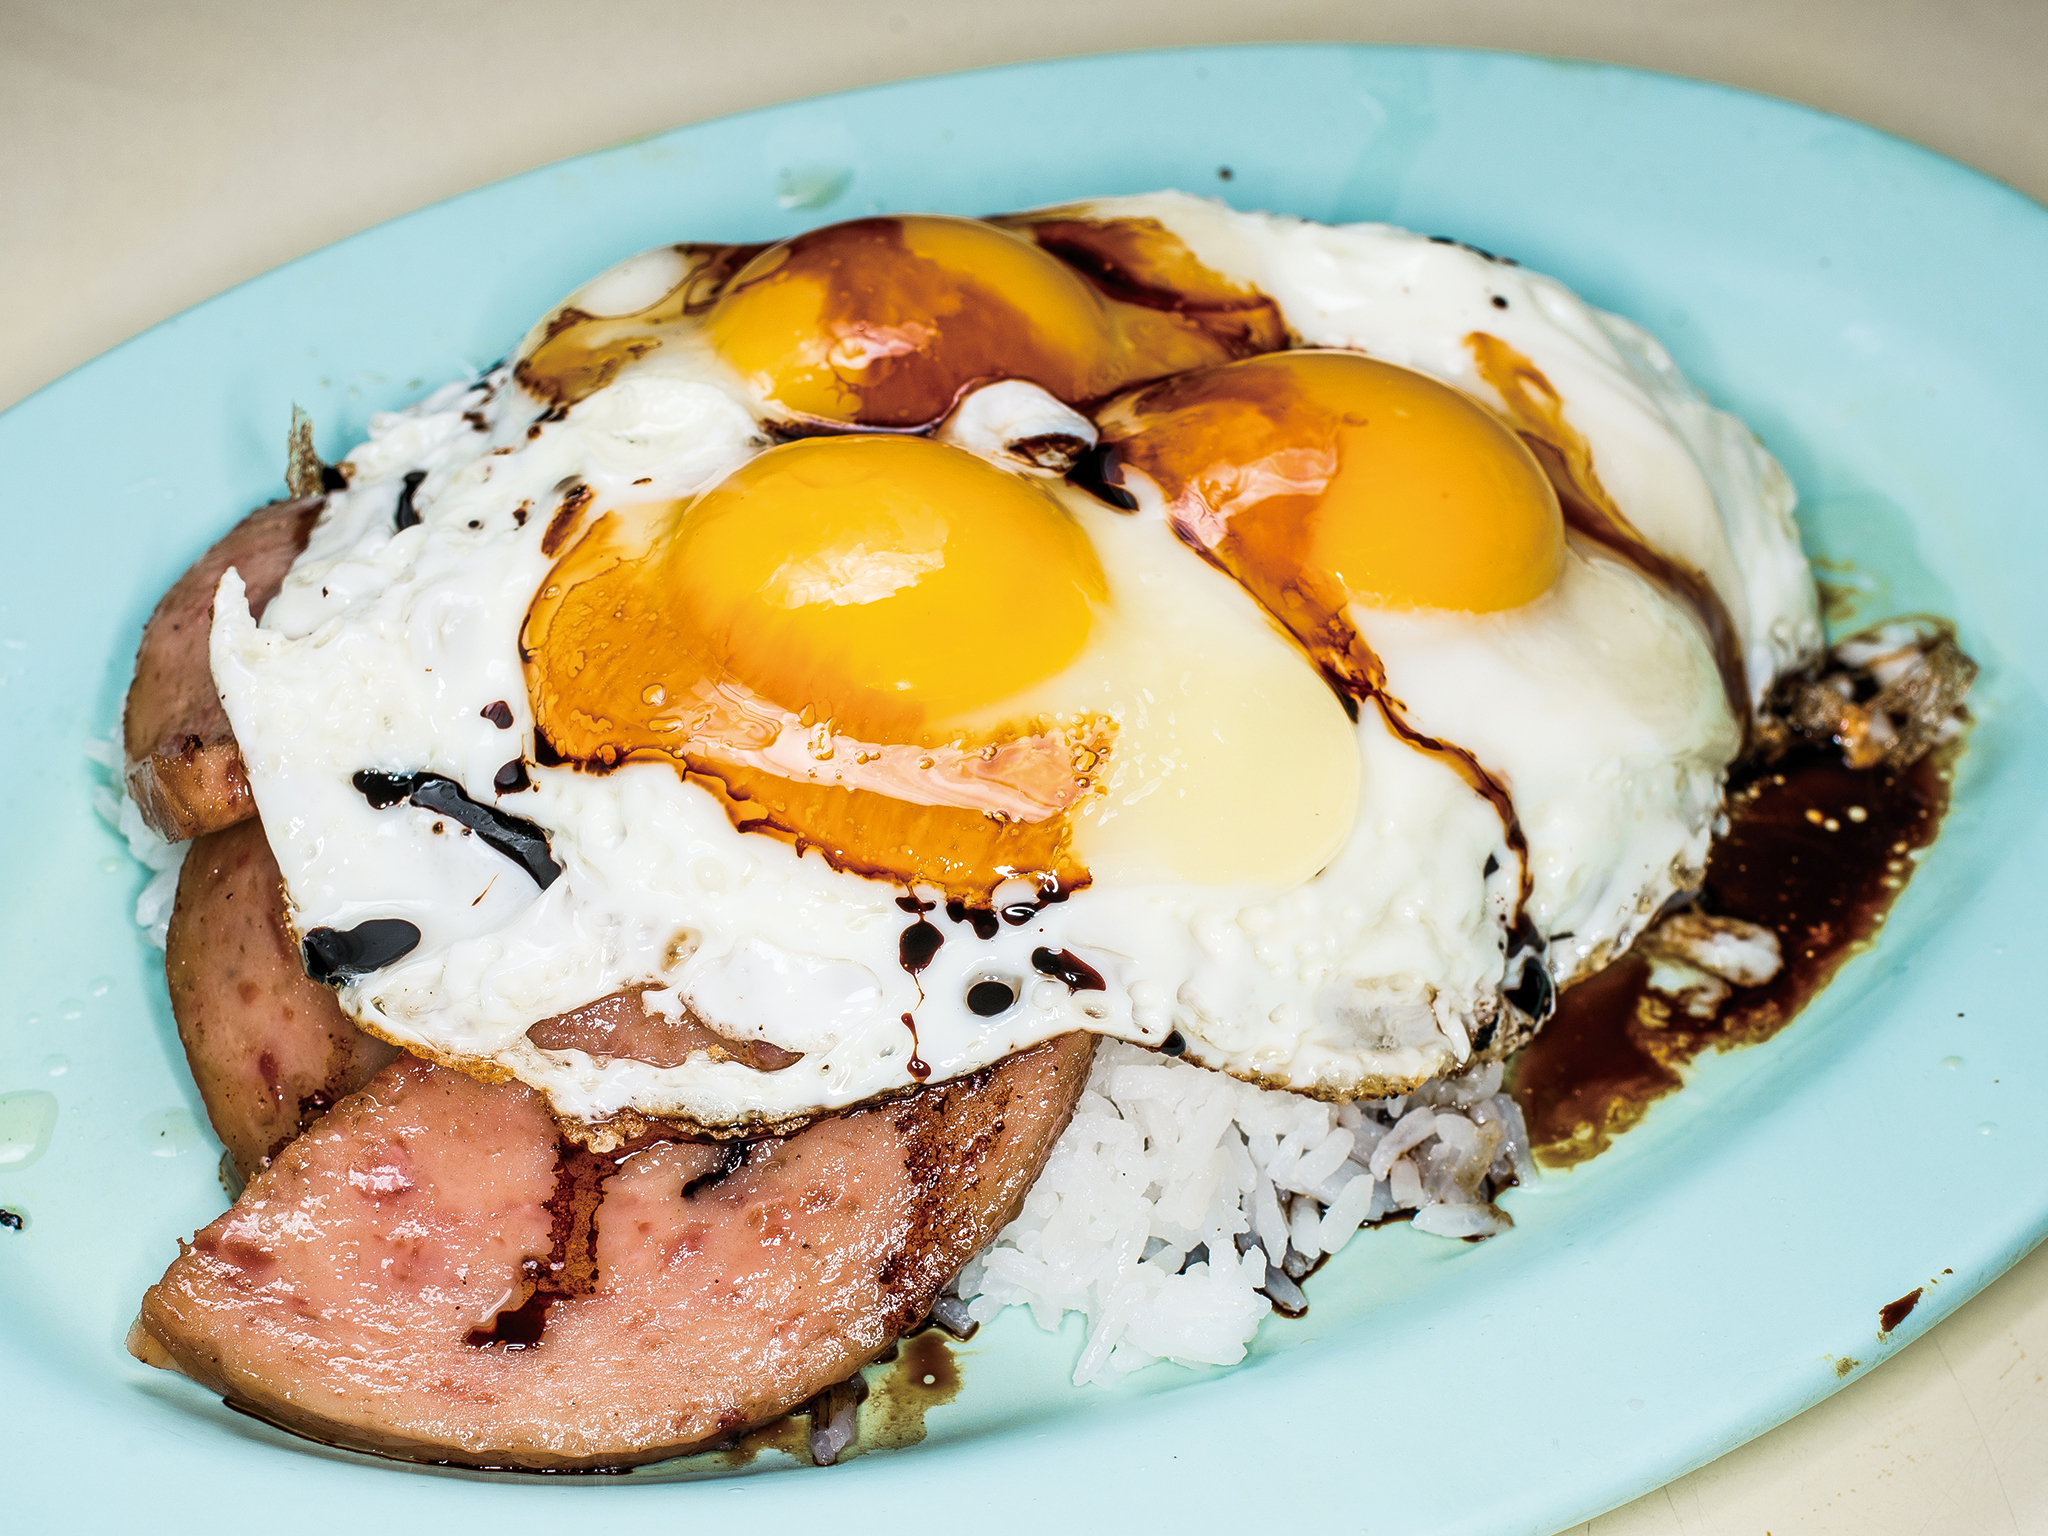 Ma Sa Restaurant spam and eggs